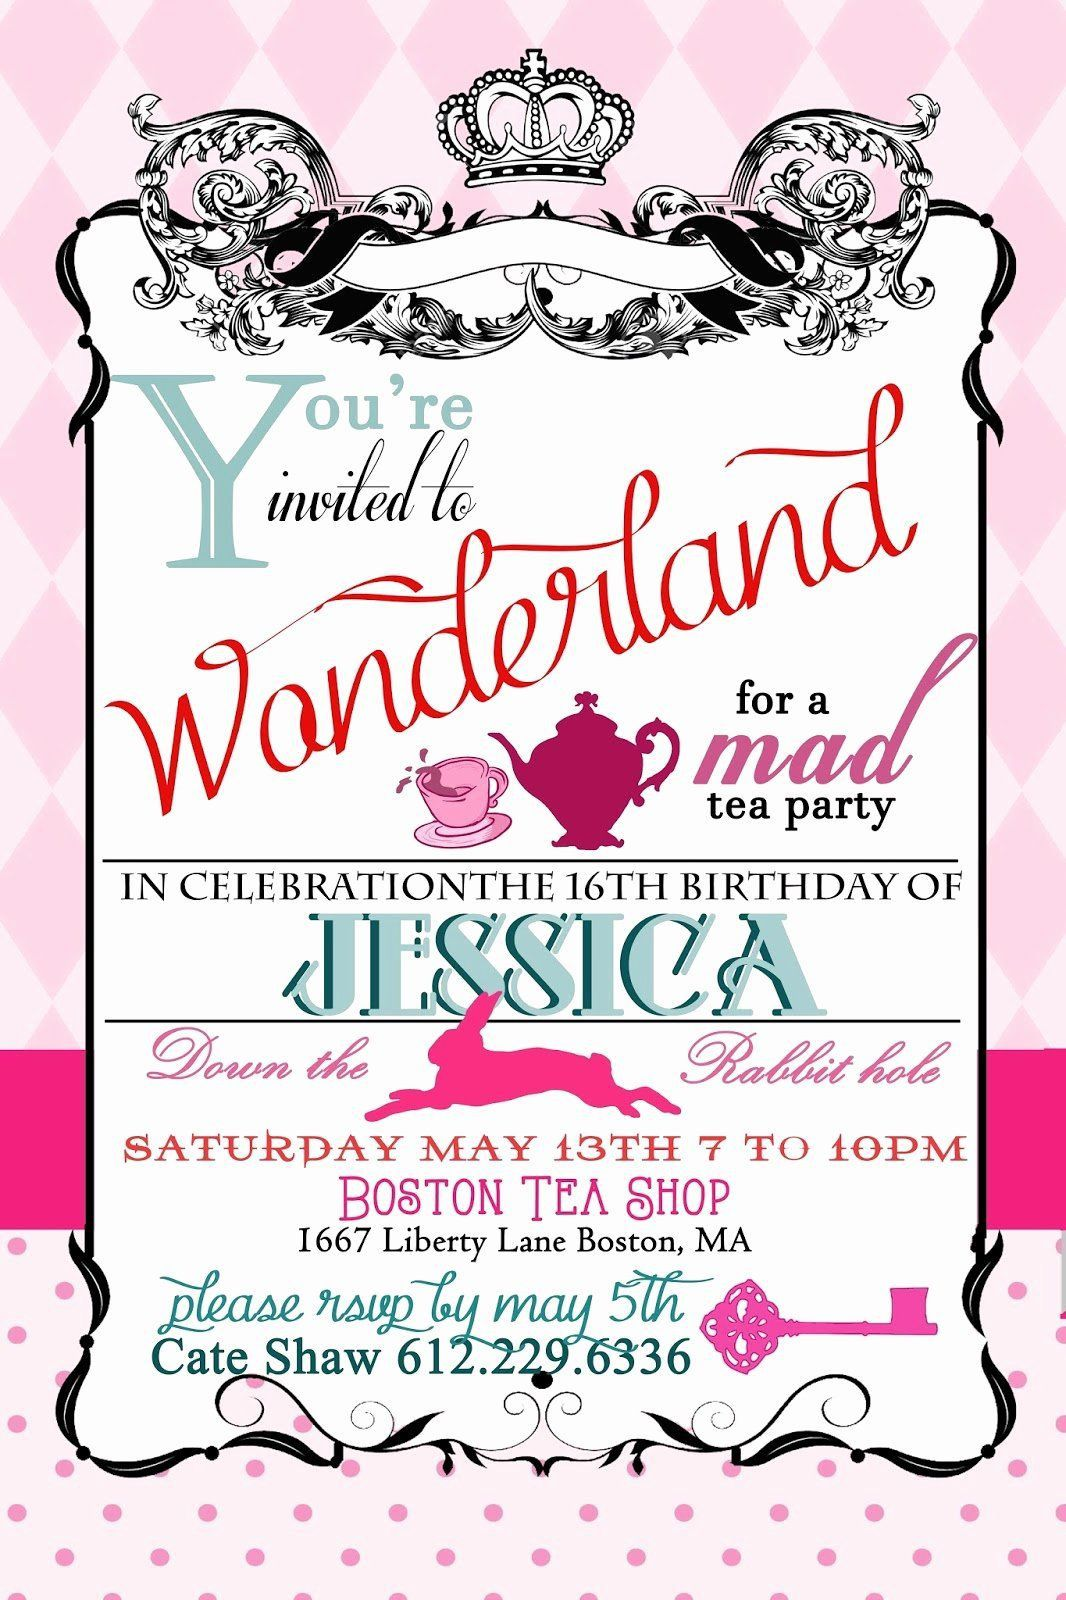 005 Exceptional Alice In Wonderland Party Template High Definition  Templates Invitation FreeFull